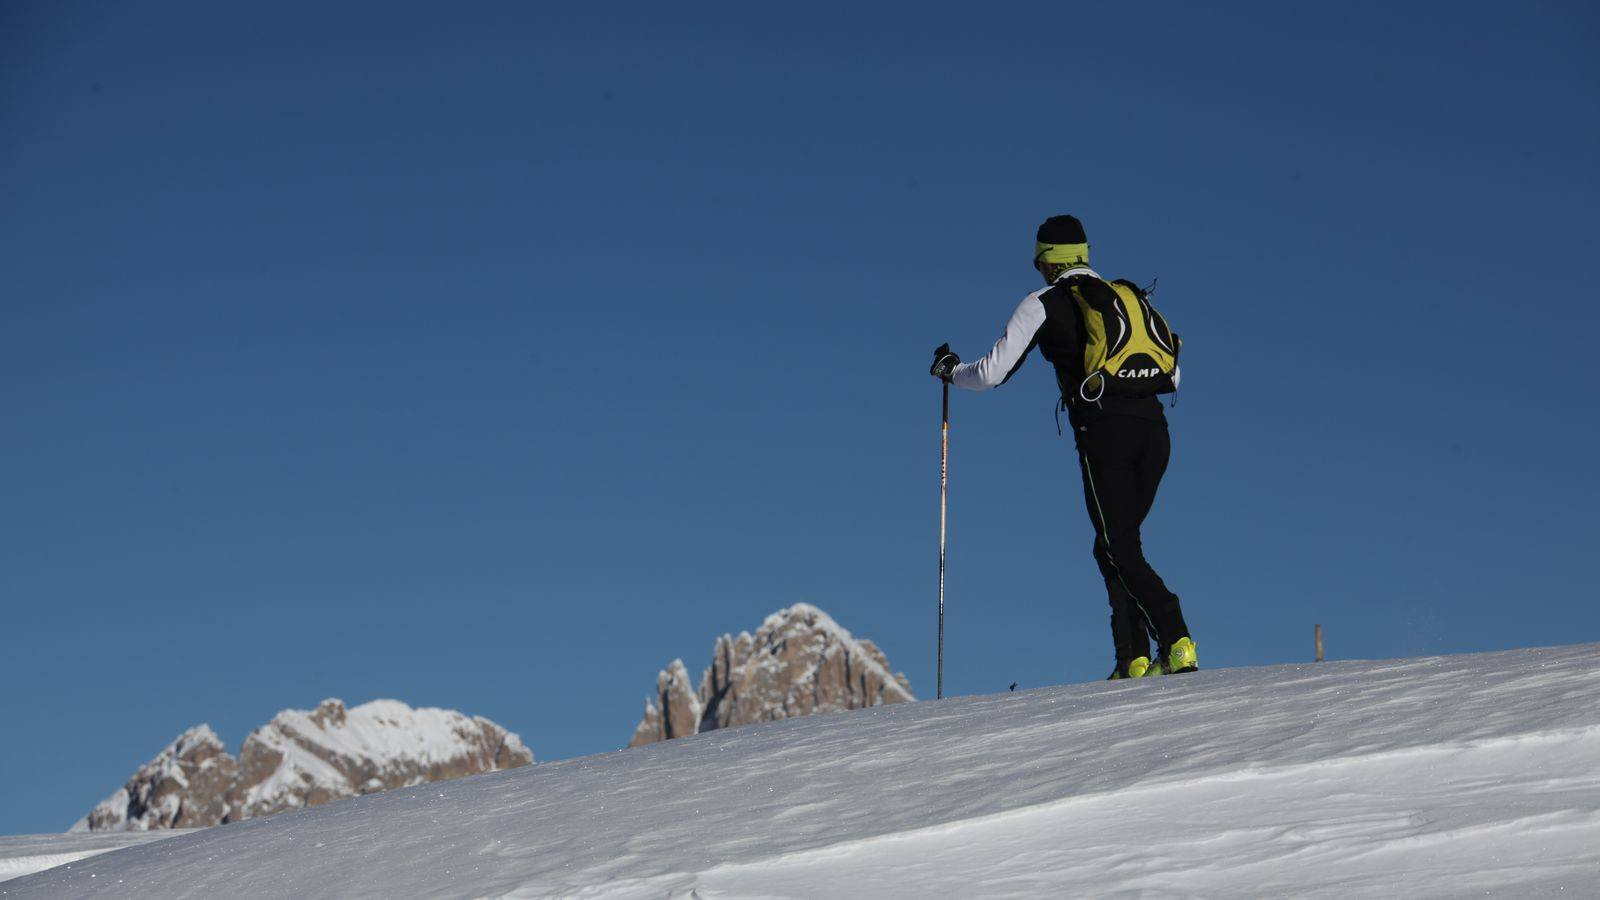 A skier practising ski touring on the ski slopes at Passo San Pellegrino